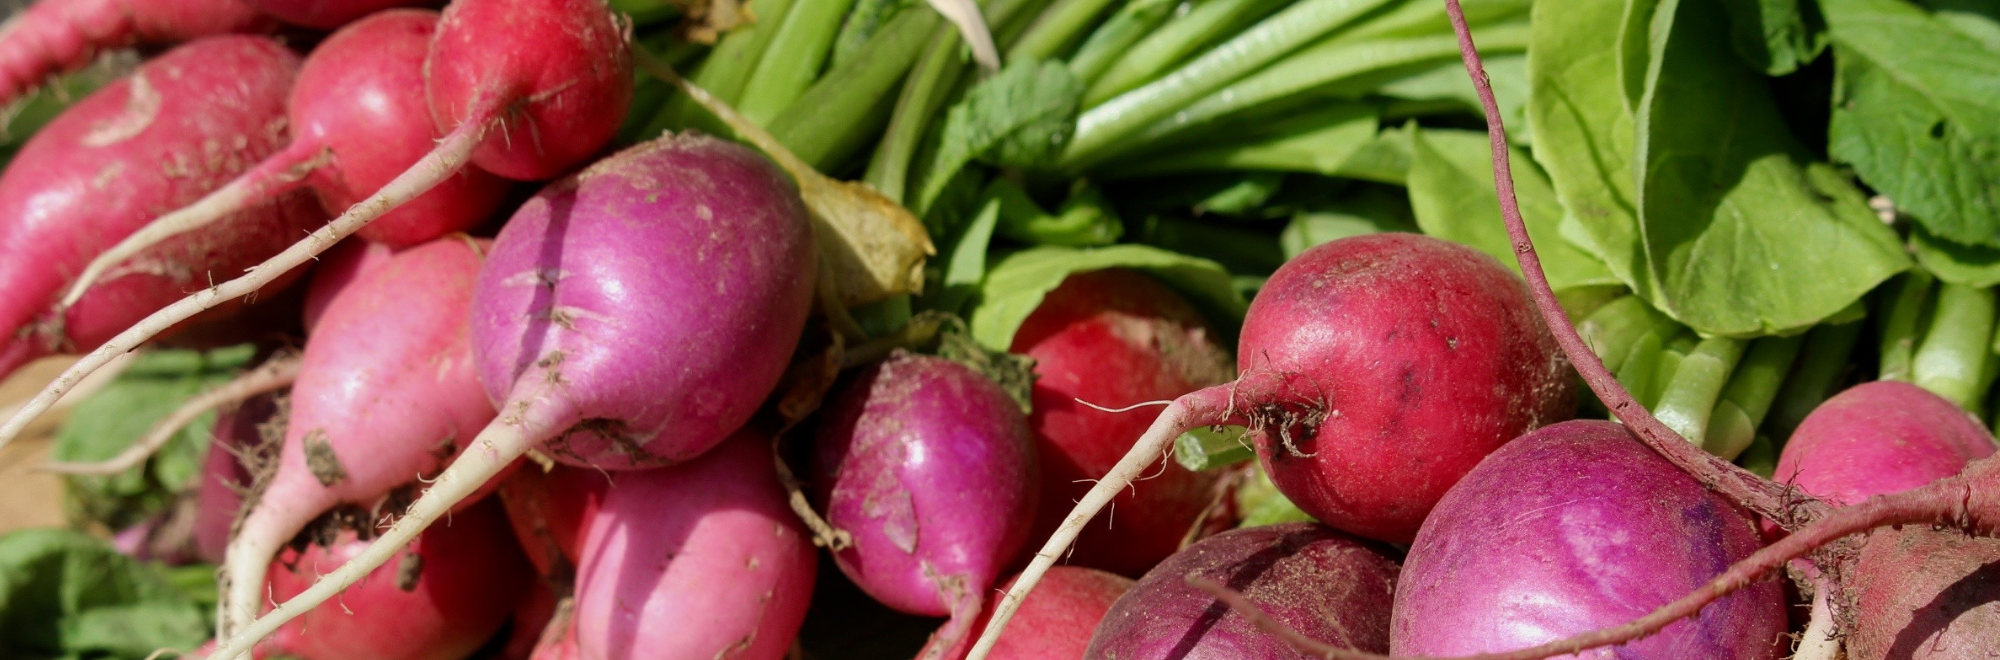 radishes stacked on a table at a farmers' market